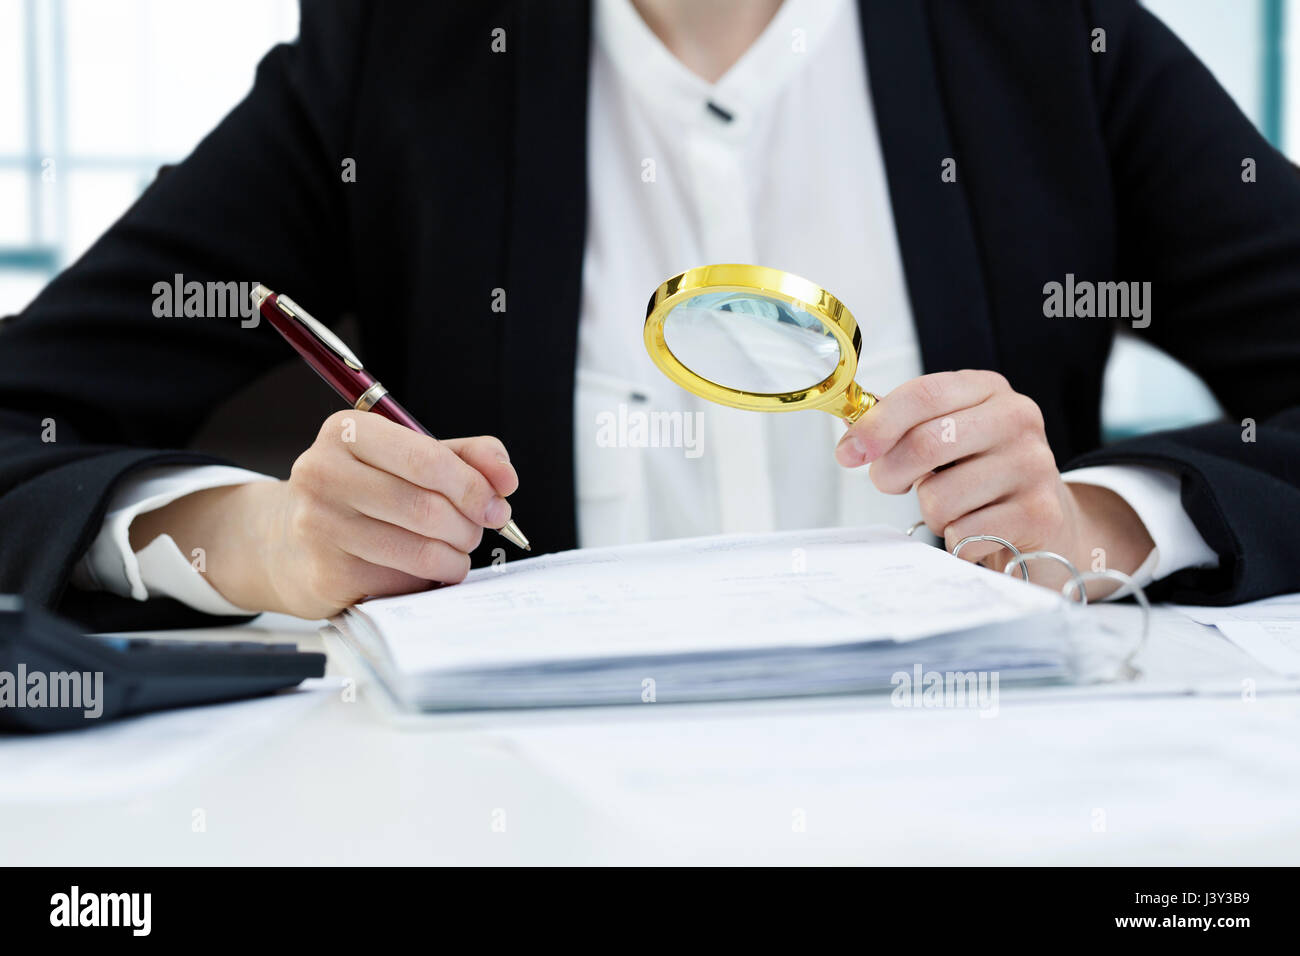 internal audit concept - woman with magnifying glass inspecting documents - Stock Image